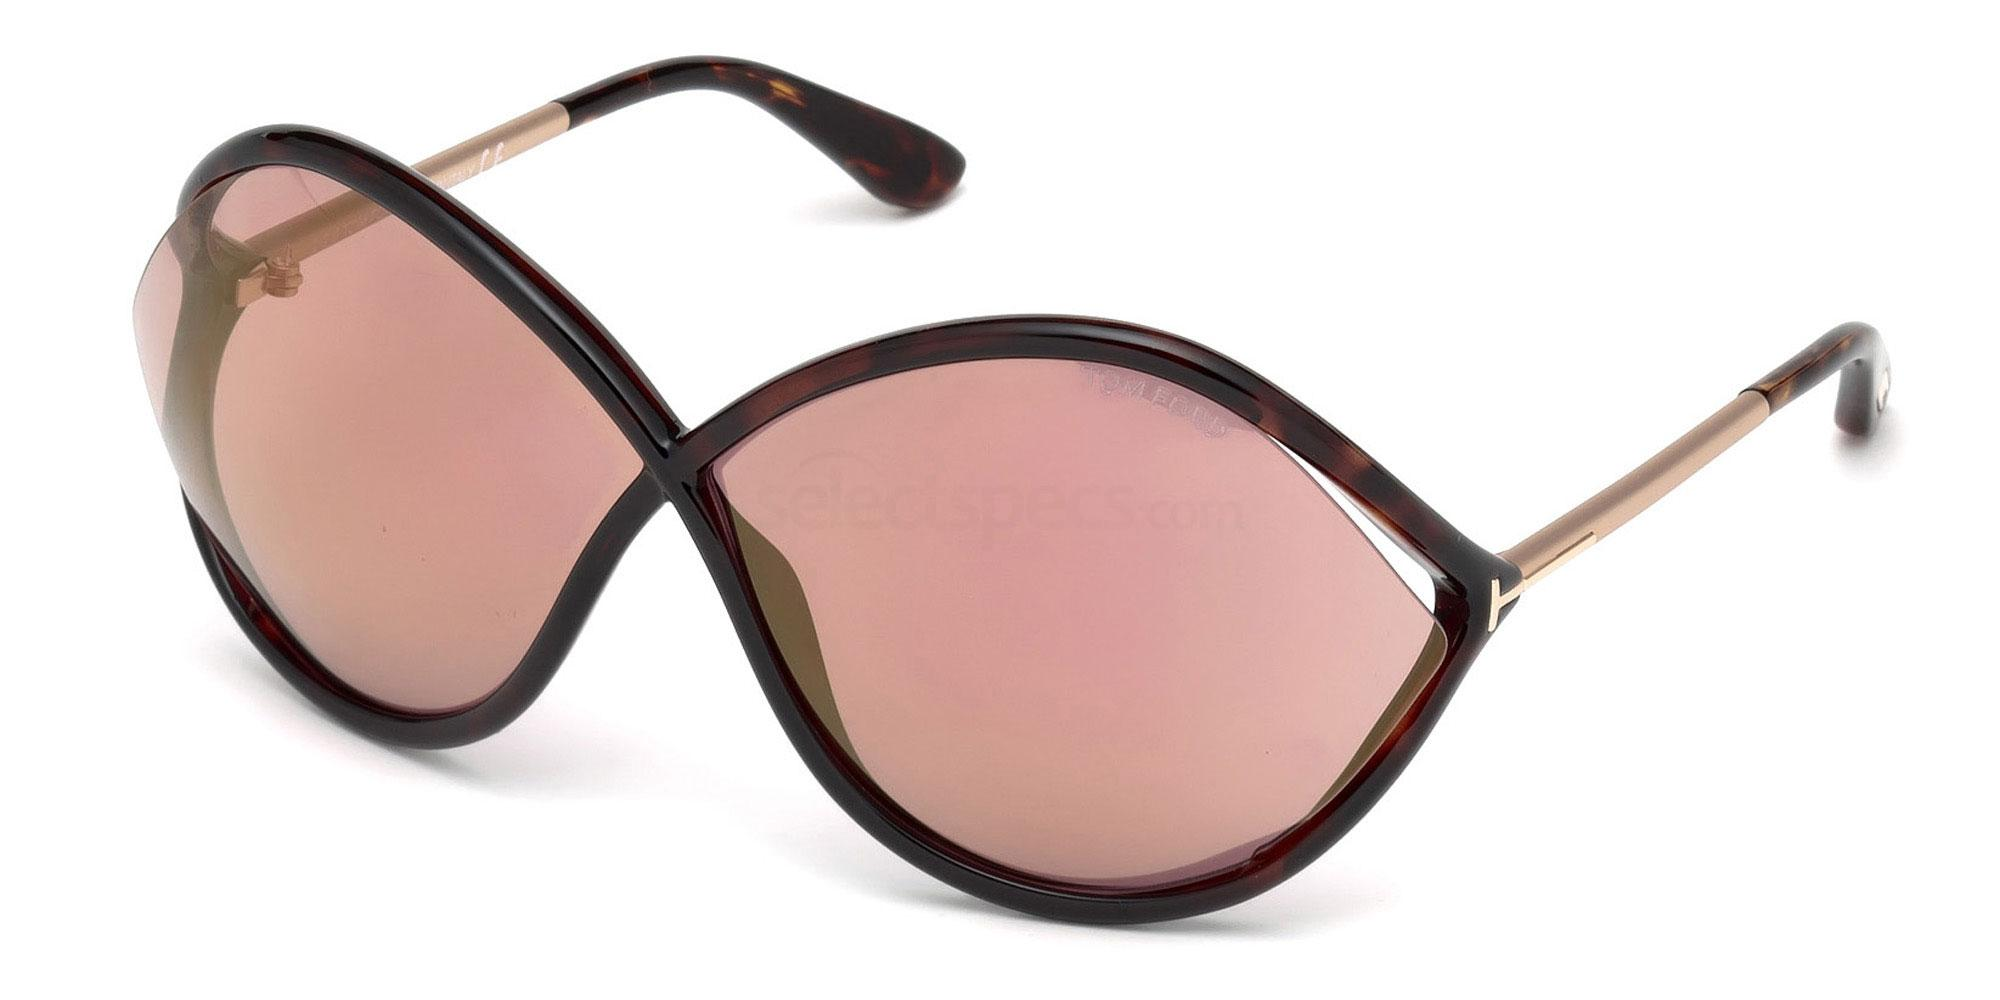 52Z FT0528 Sunglasses, Tom Ford